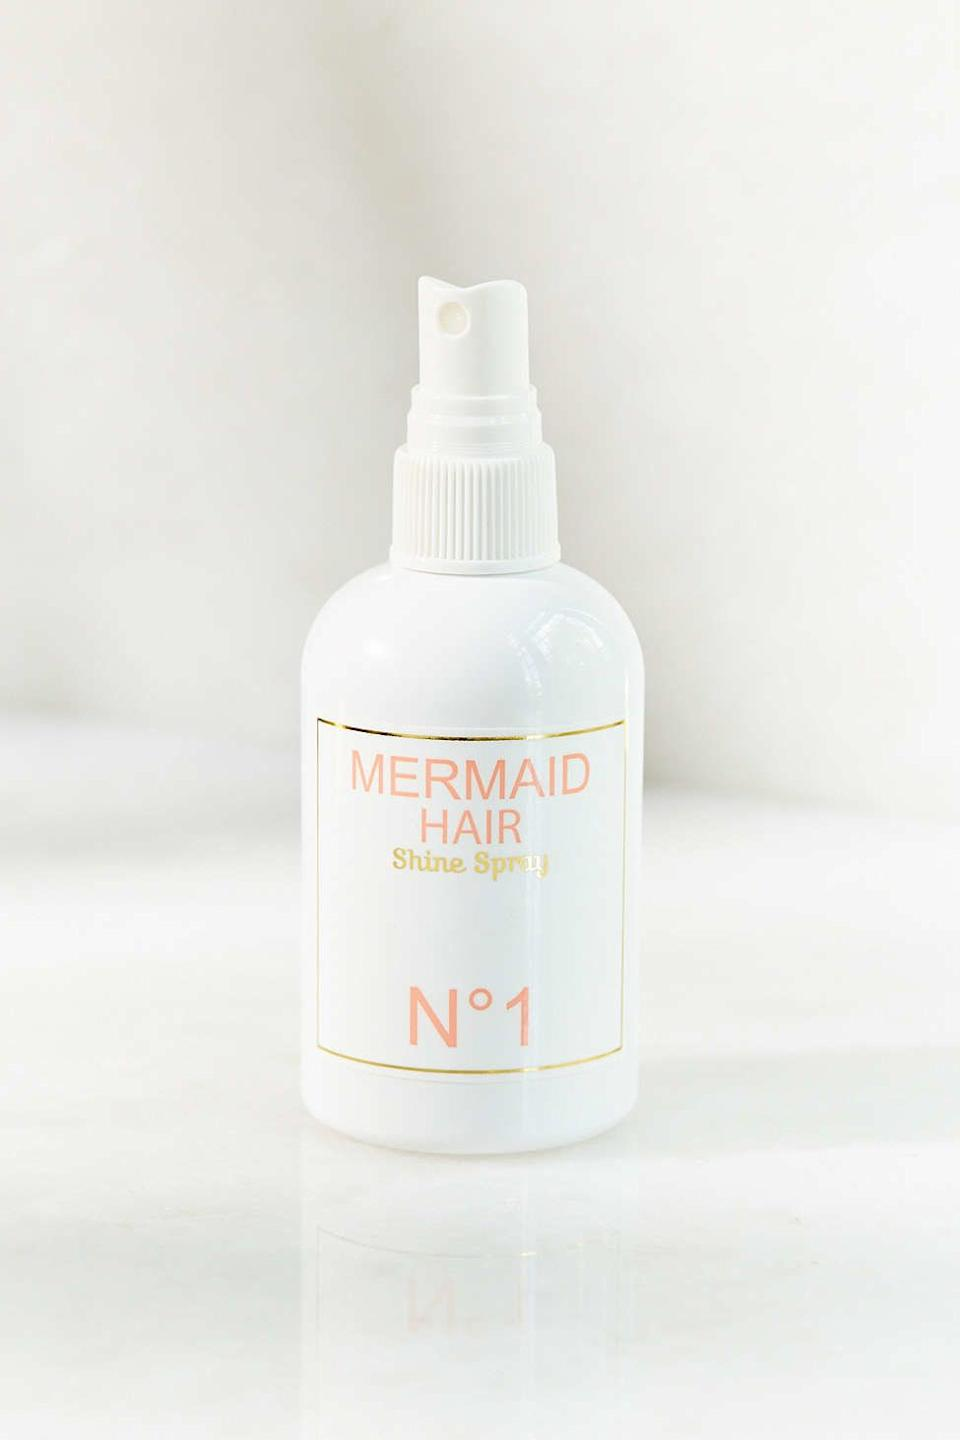 """Mermaid Hair Shine Spray, $28, <a href=""""http://www.urbanoutfitters.com/urban/catalog/productdetail.jsp?id=33853193&category=SEARCH+RESULTS"""" target=""""_blank"""">Urban Outfitters</a>"""